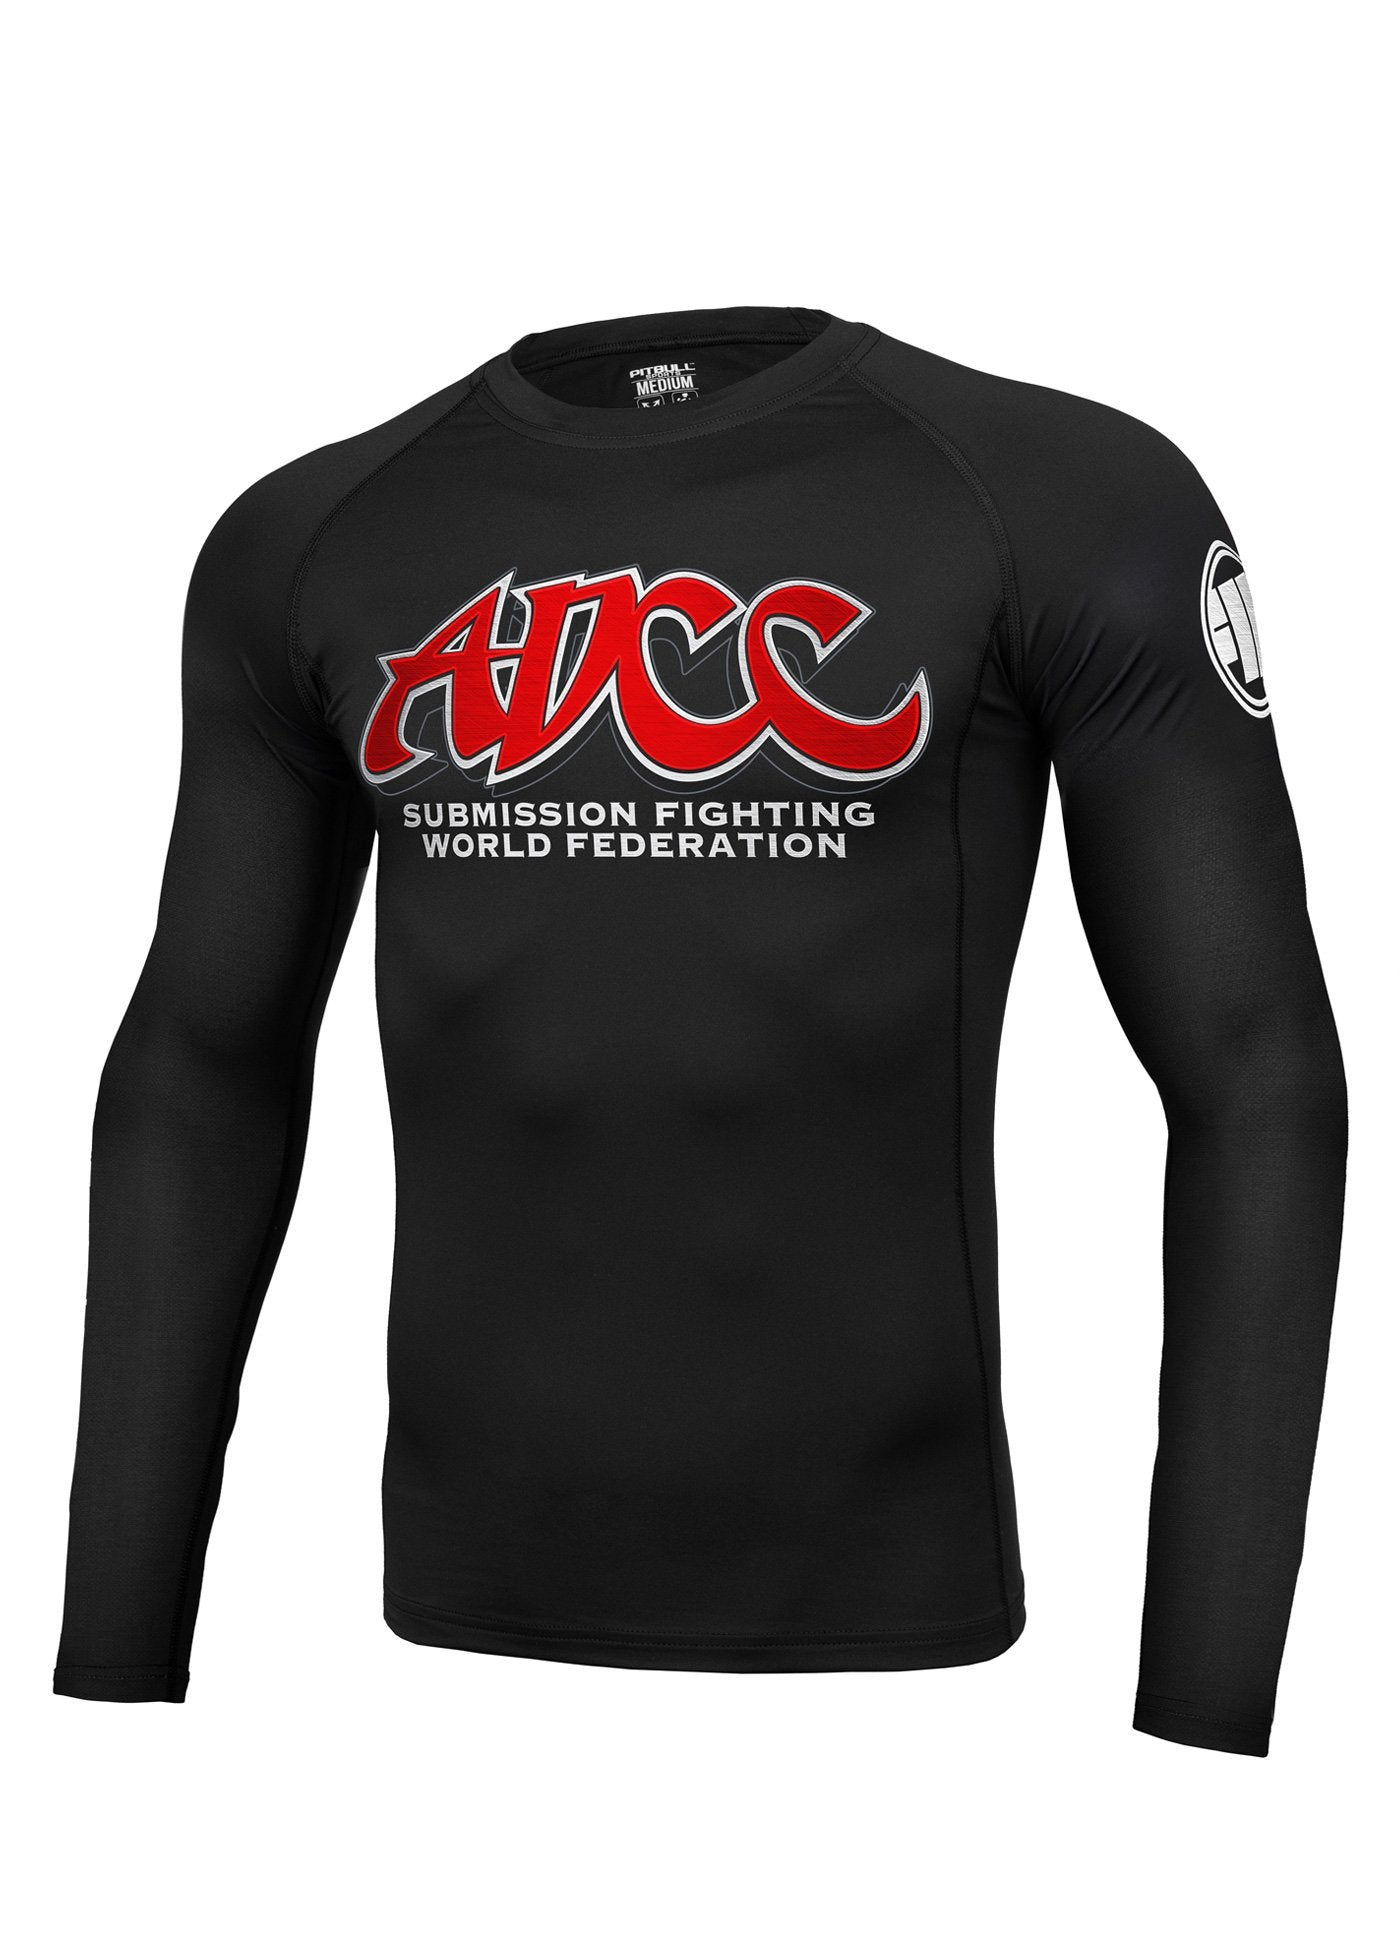 ADCC LOGO Long Sleeve Rashguard - Pitbull West Coast U.S.A.